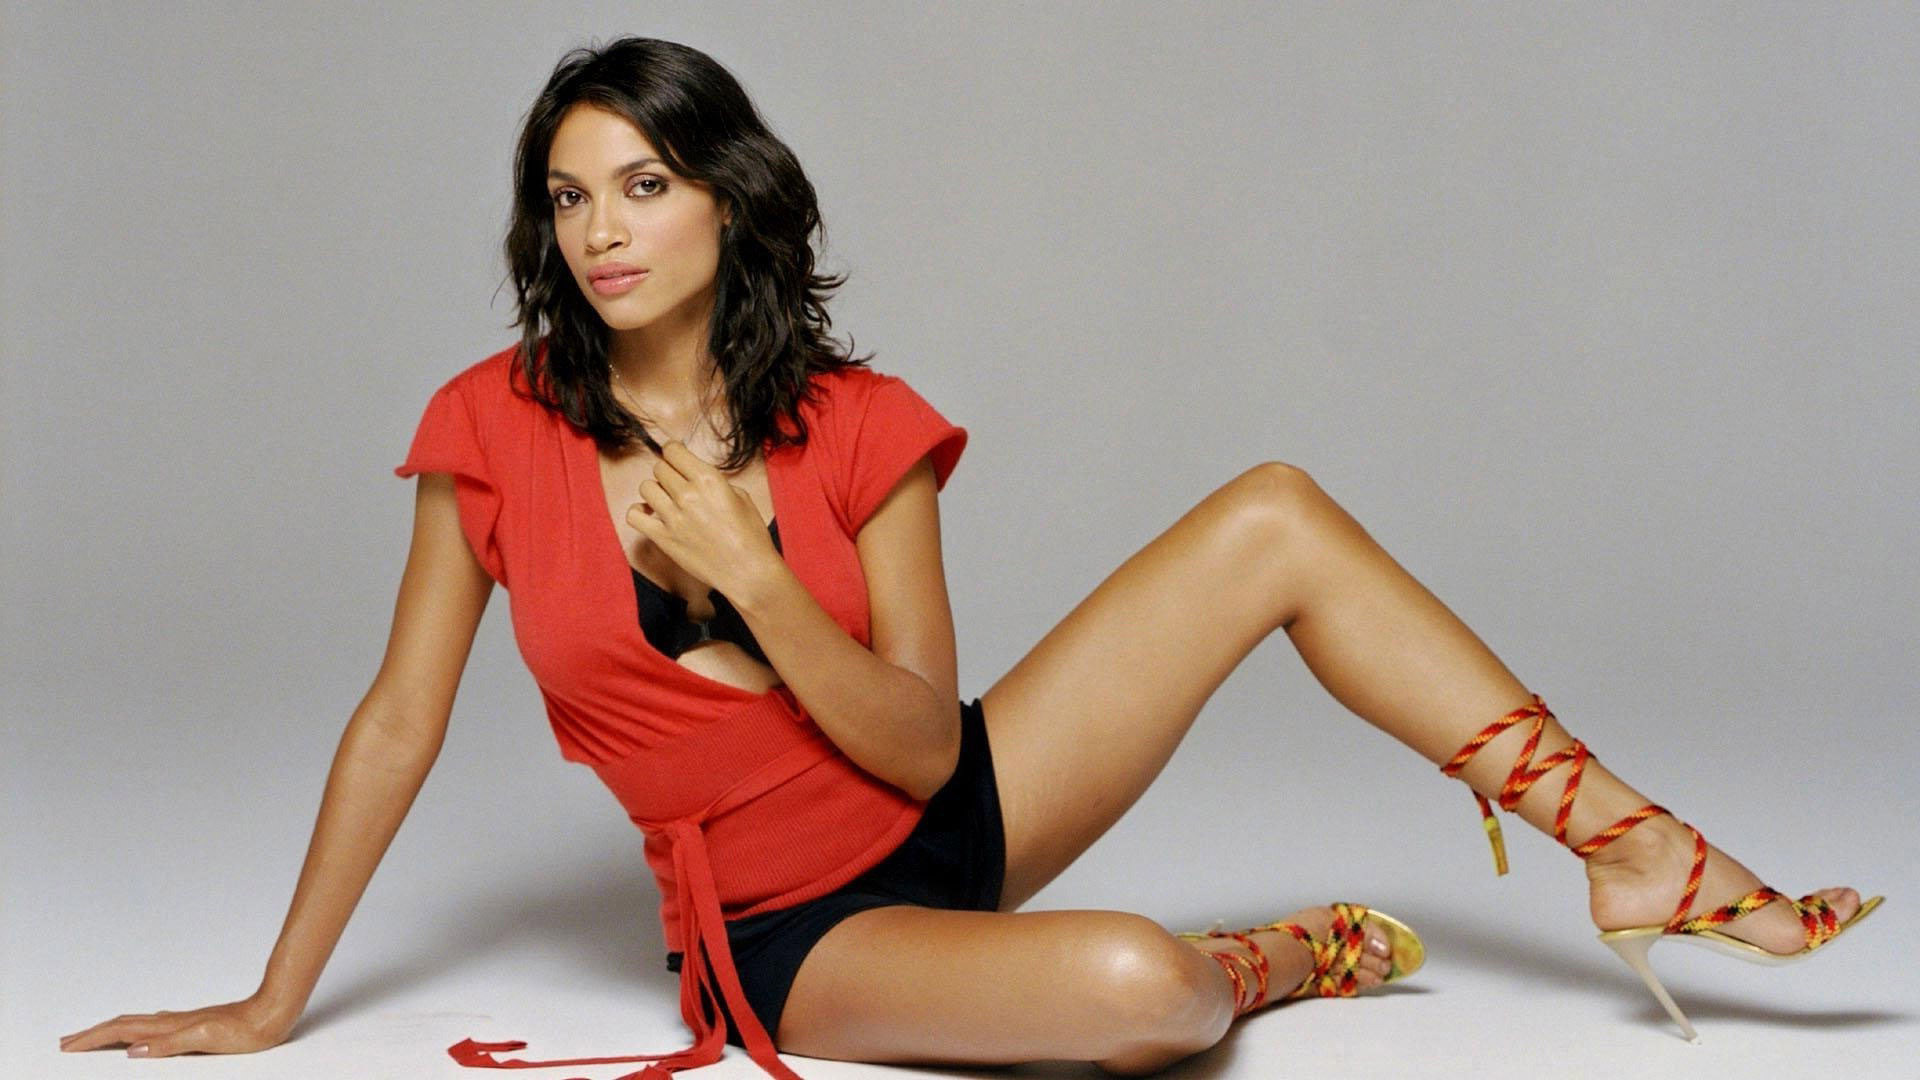 Rosario Dawson Wallpaper For Laptop